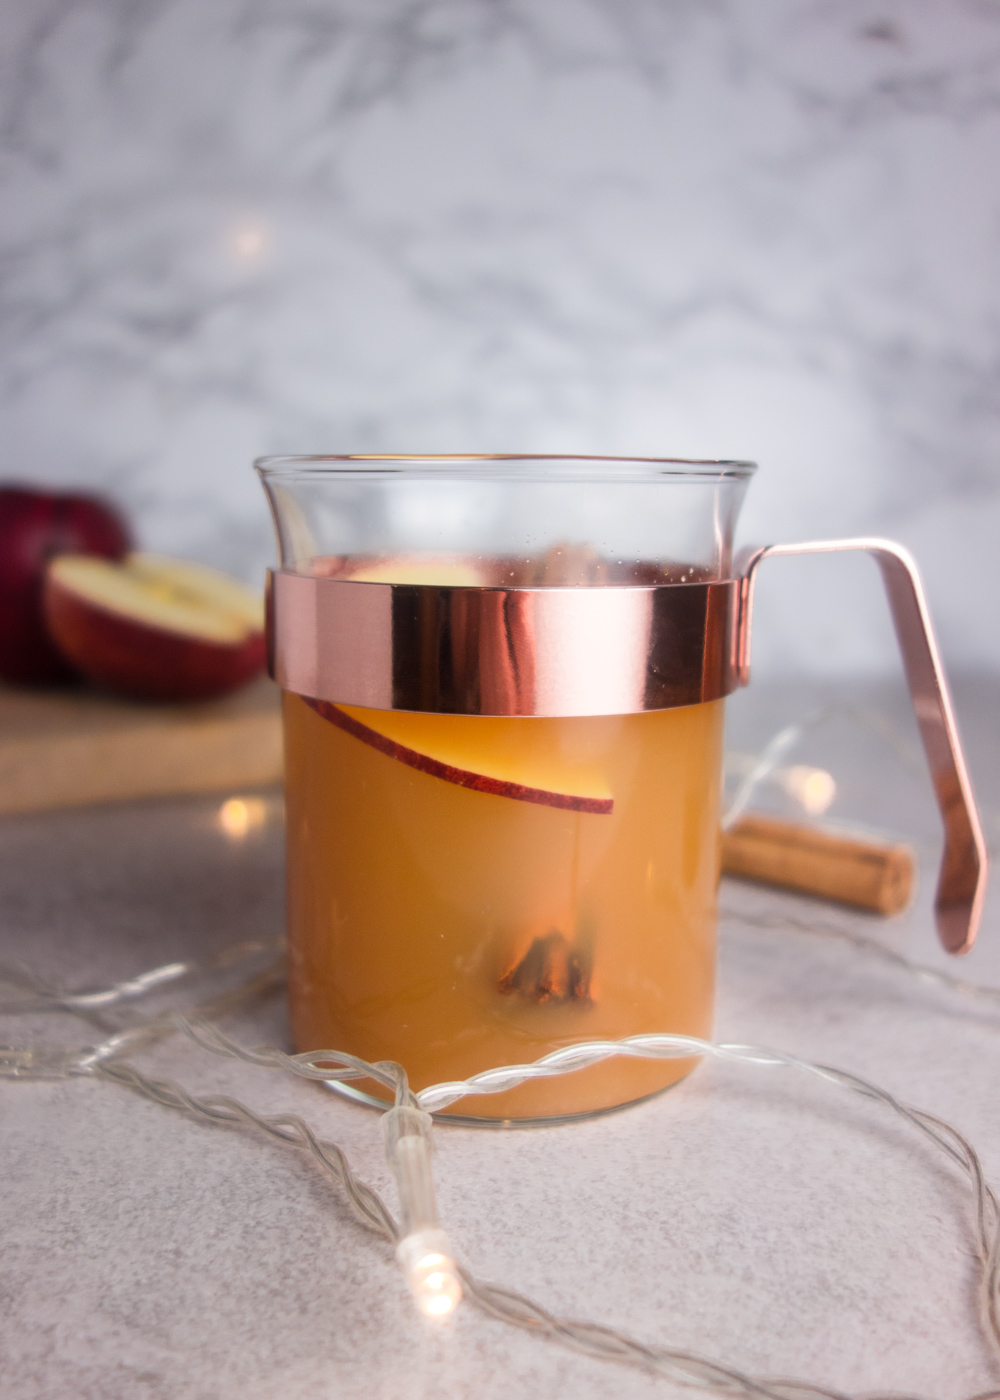 This warm apple Pimms recipe is spiced with orange and cinnamon to create the perfect winter warmer take on Pimms!